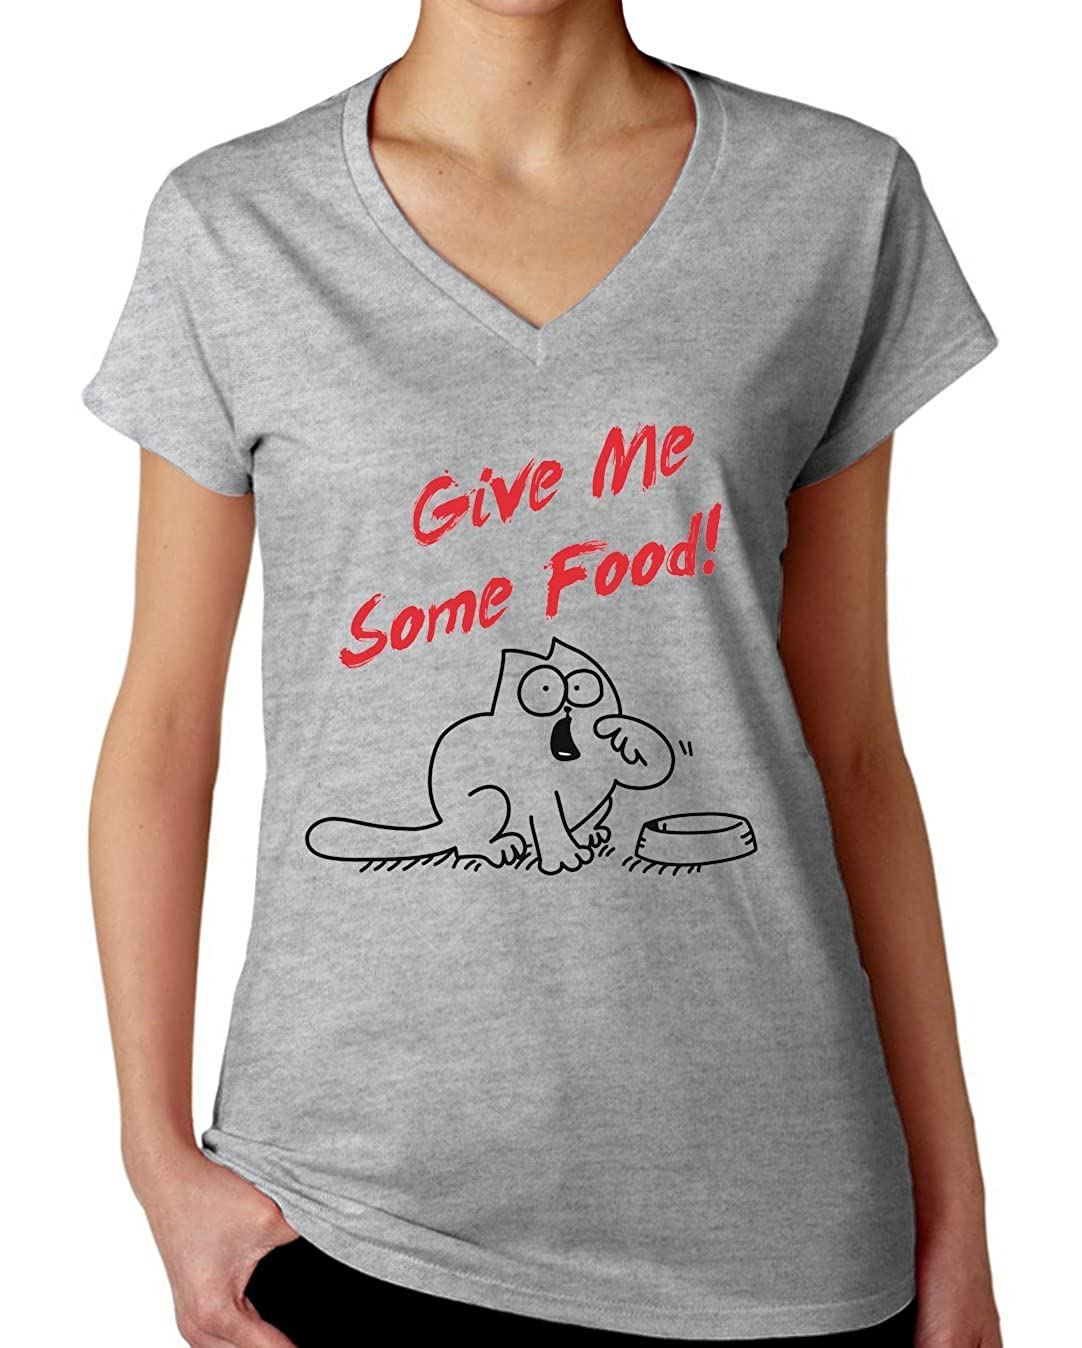 Simon's Cat - Give Me Some Food T-Shirt